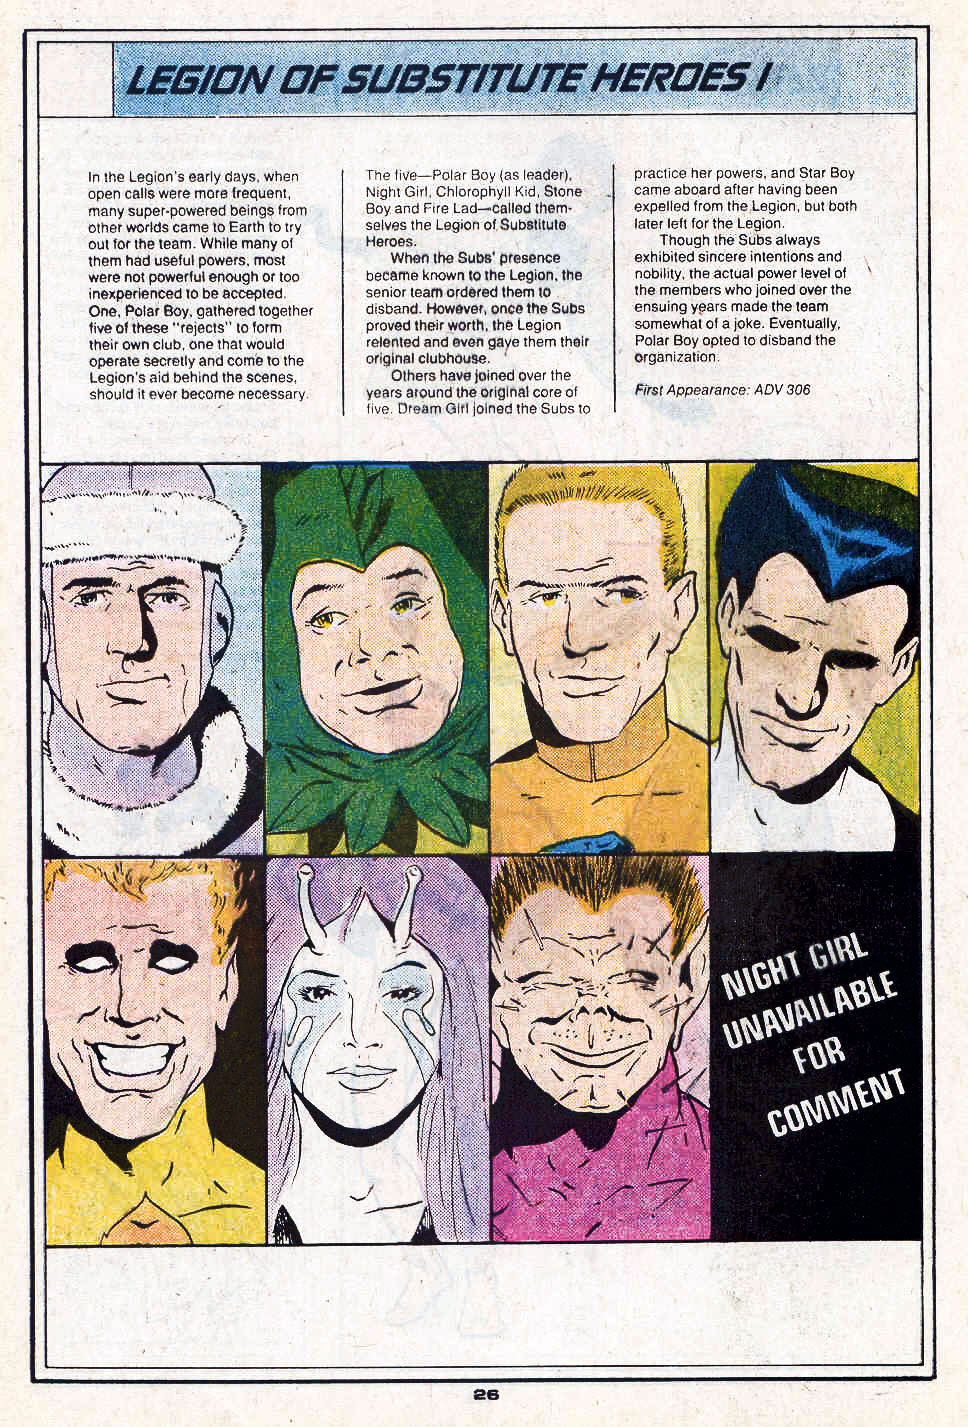 Legion of Substitute Heroes I by Keith Giffen and Richard Bruning - Who's Who in the Legion of Super-Heroes #3